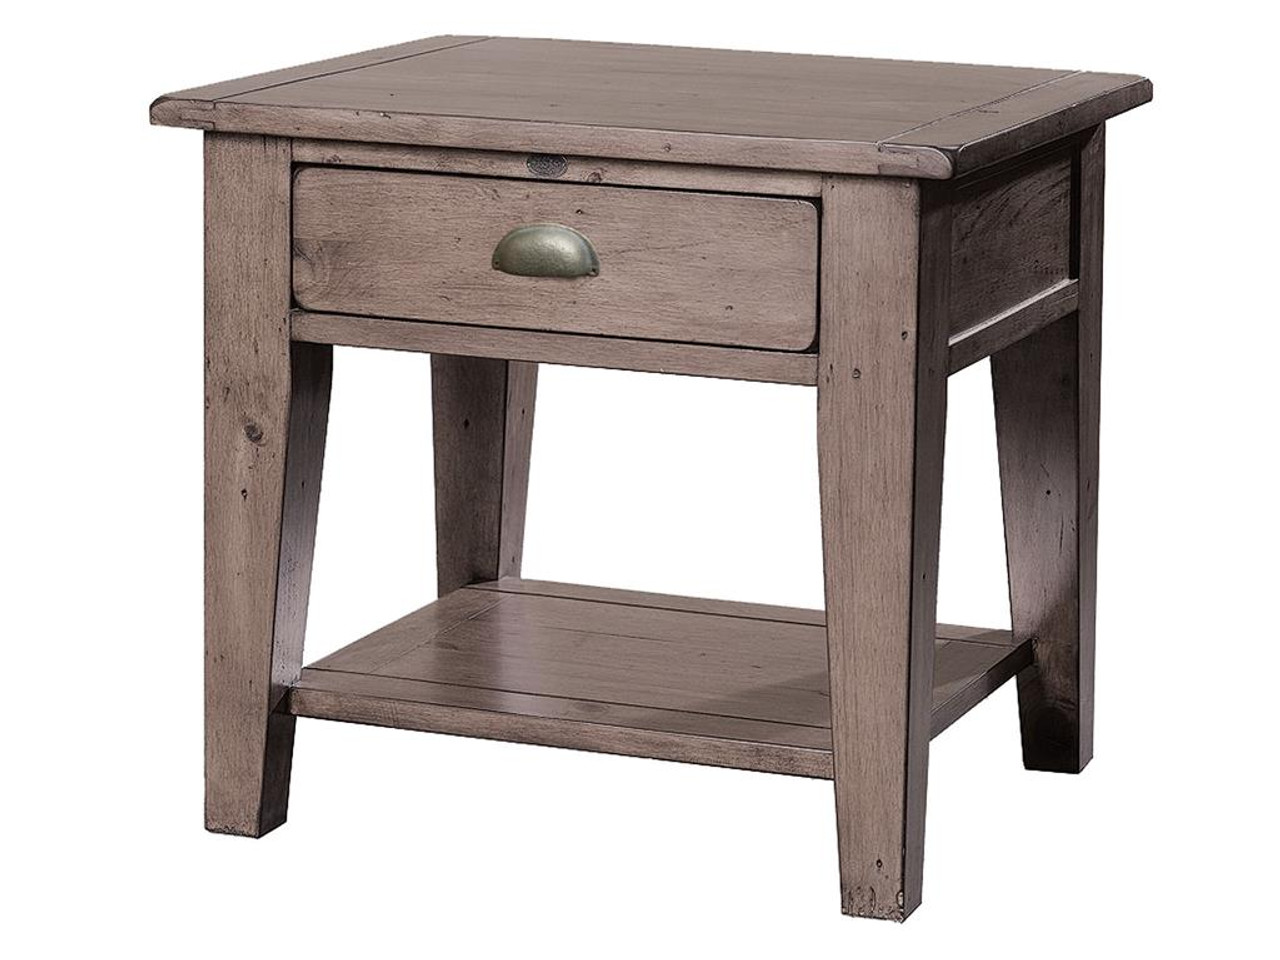 Merveilleux Coastal Solid Reclaimed Wood Side Table With 1 Drawer